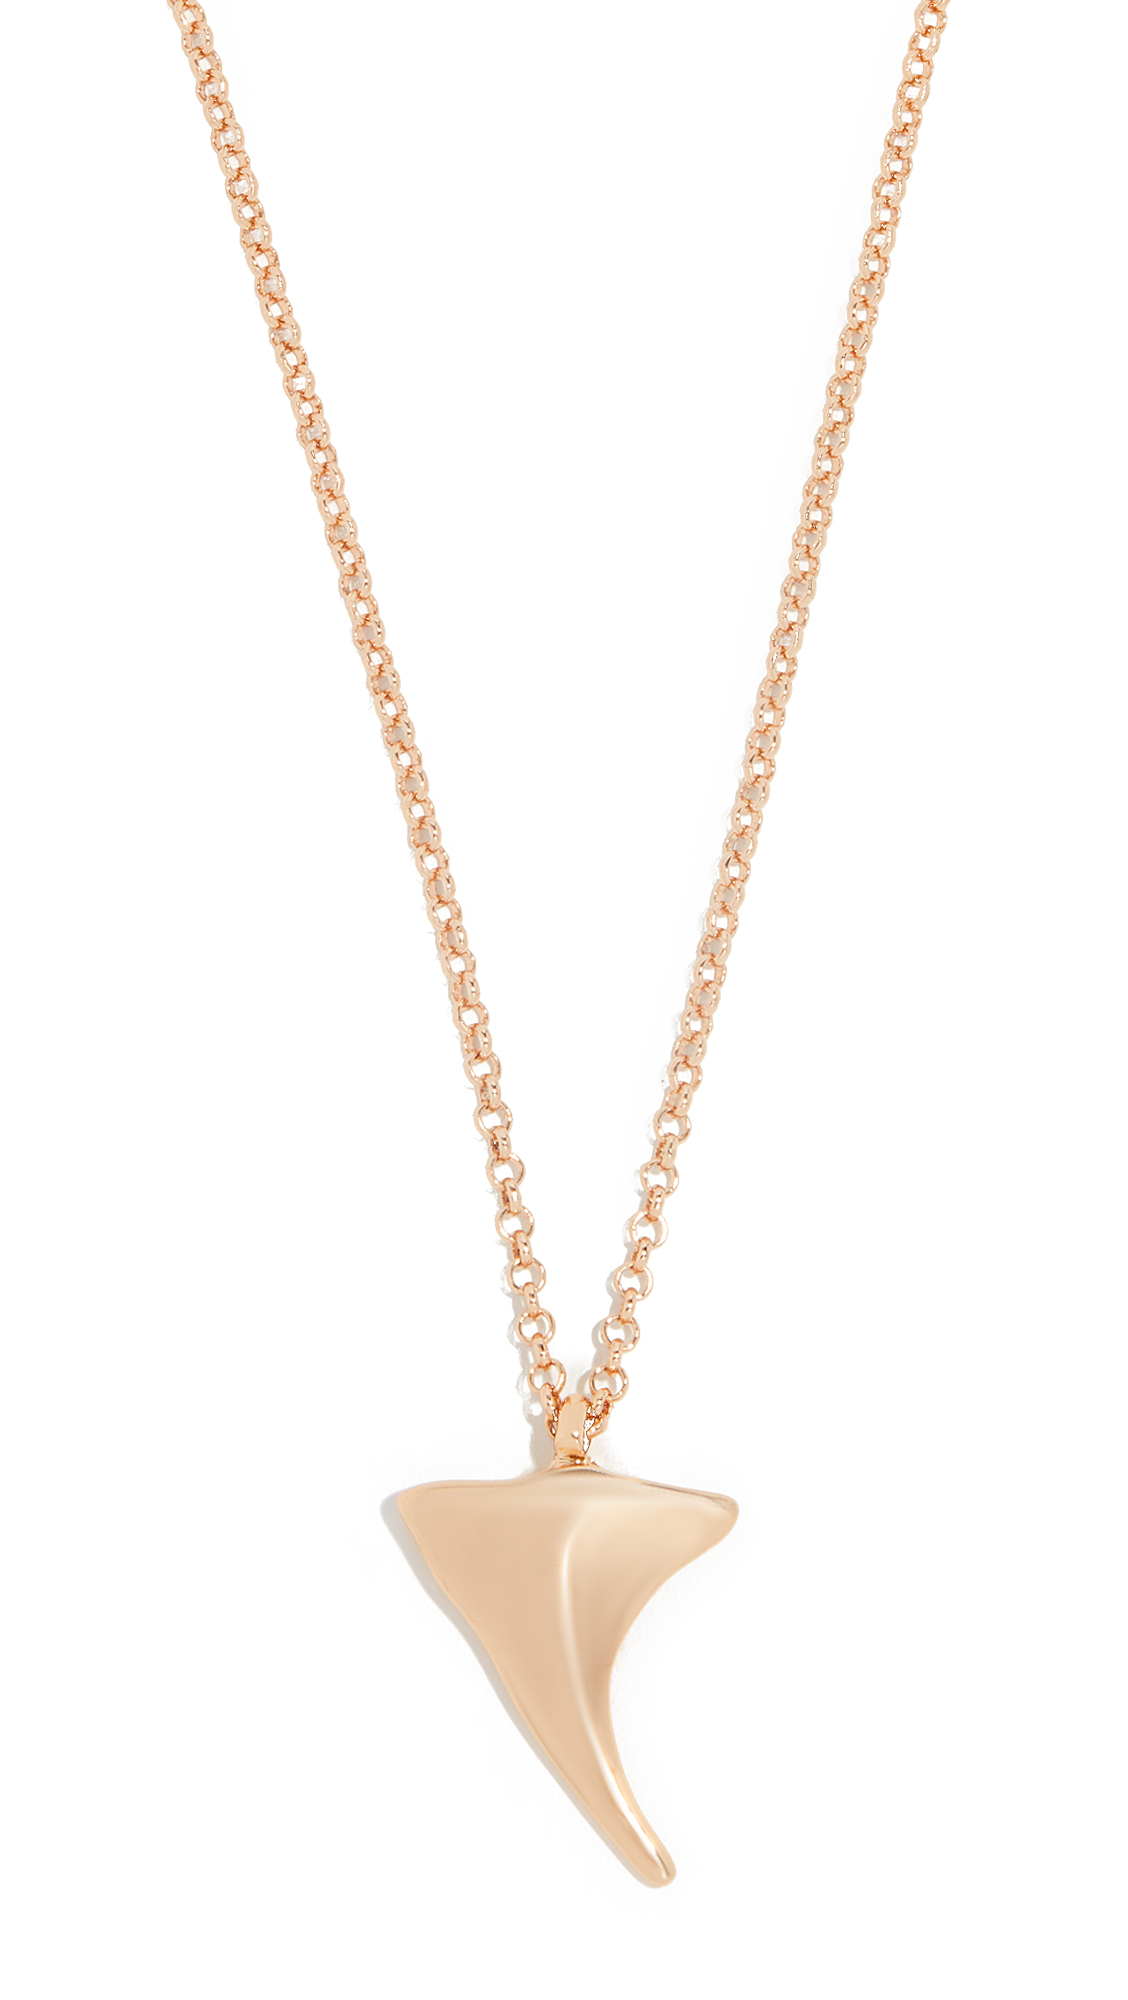 RELIQUIA Shark Tooth Necklace in Yellow Gold